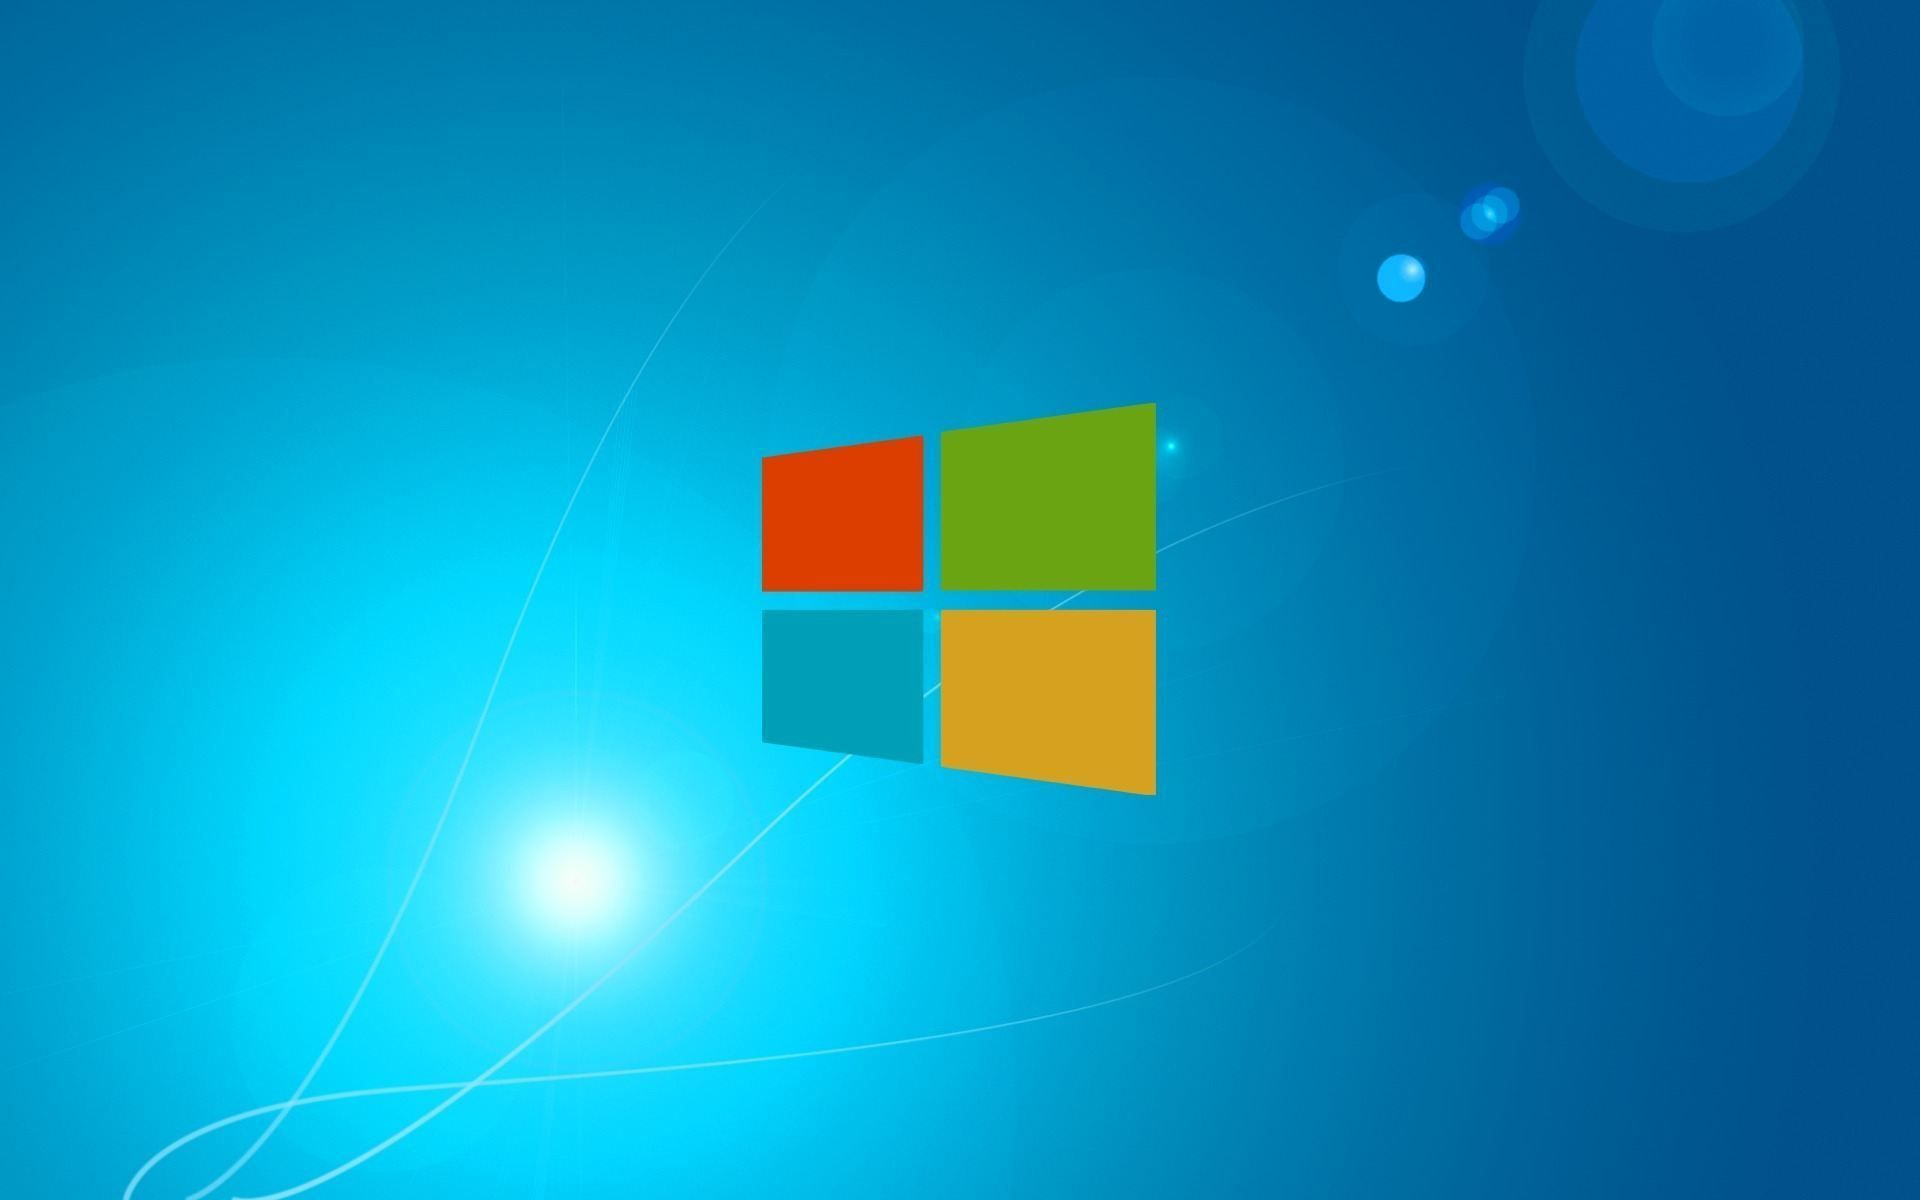 23 Of The Best Windows 10 Wallpaper Backgrounds Microsoft Wallpaper Colorful Backgrounds Microsoft Windows